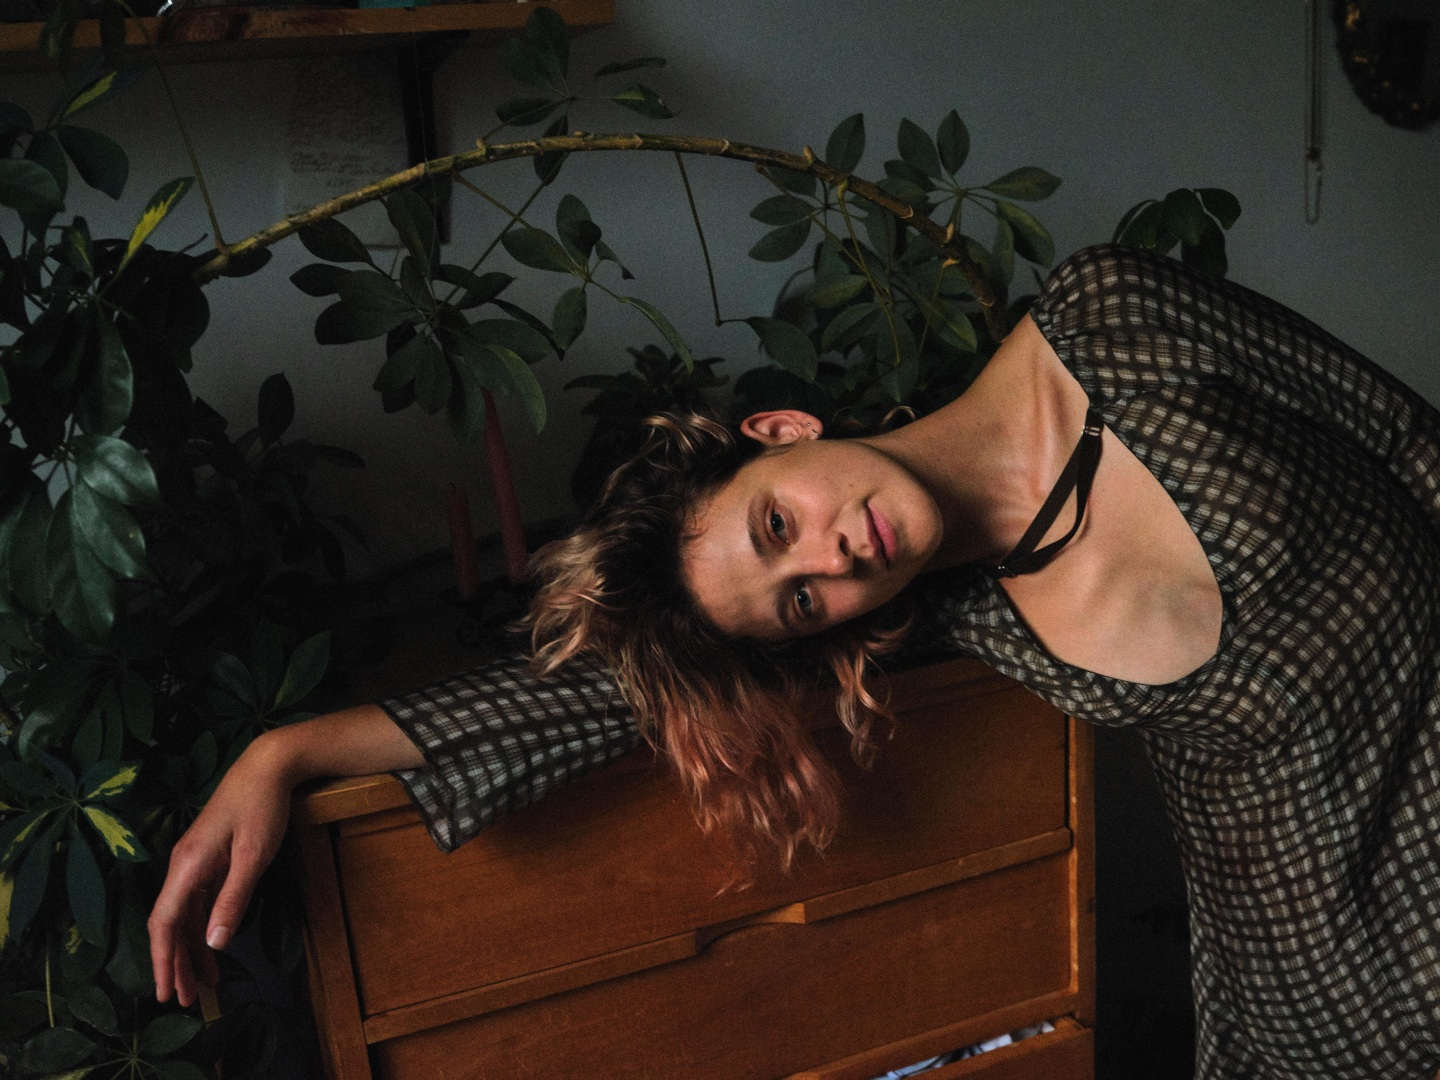 Helena Deland turns her insecurities into weird, unnerving indie rock